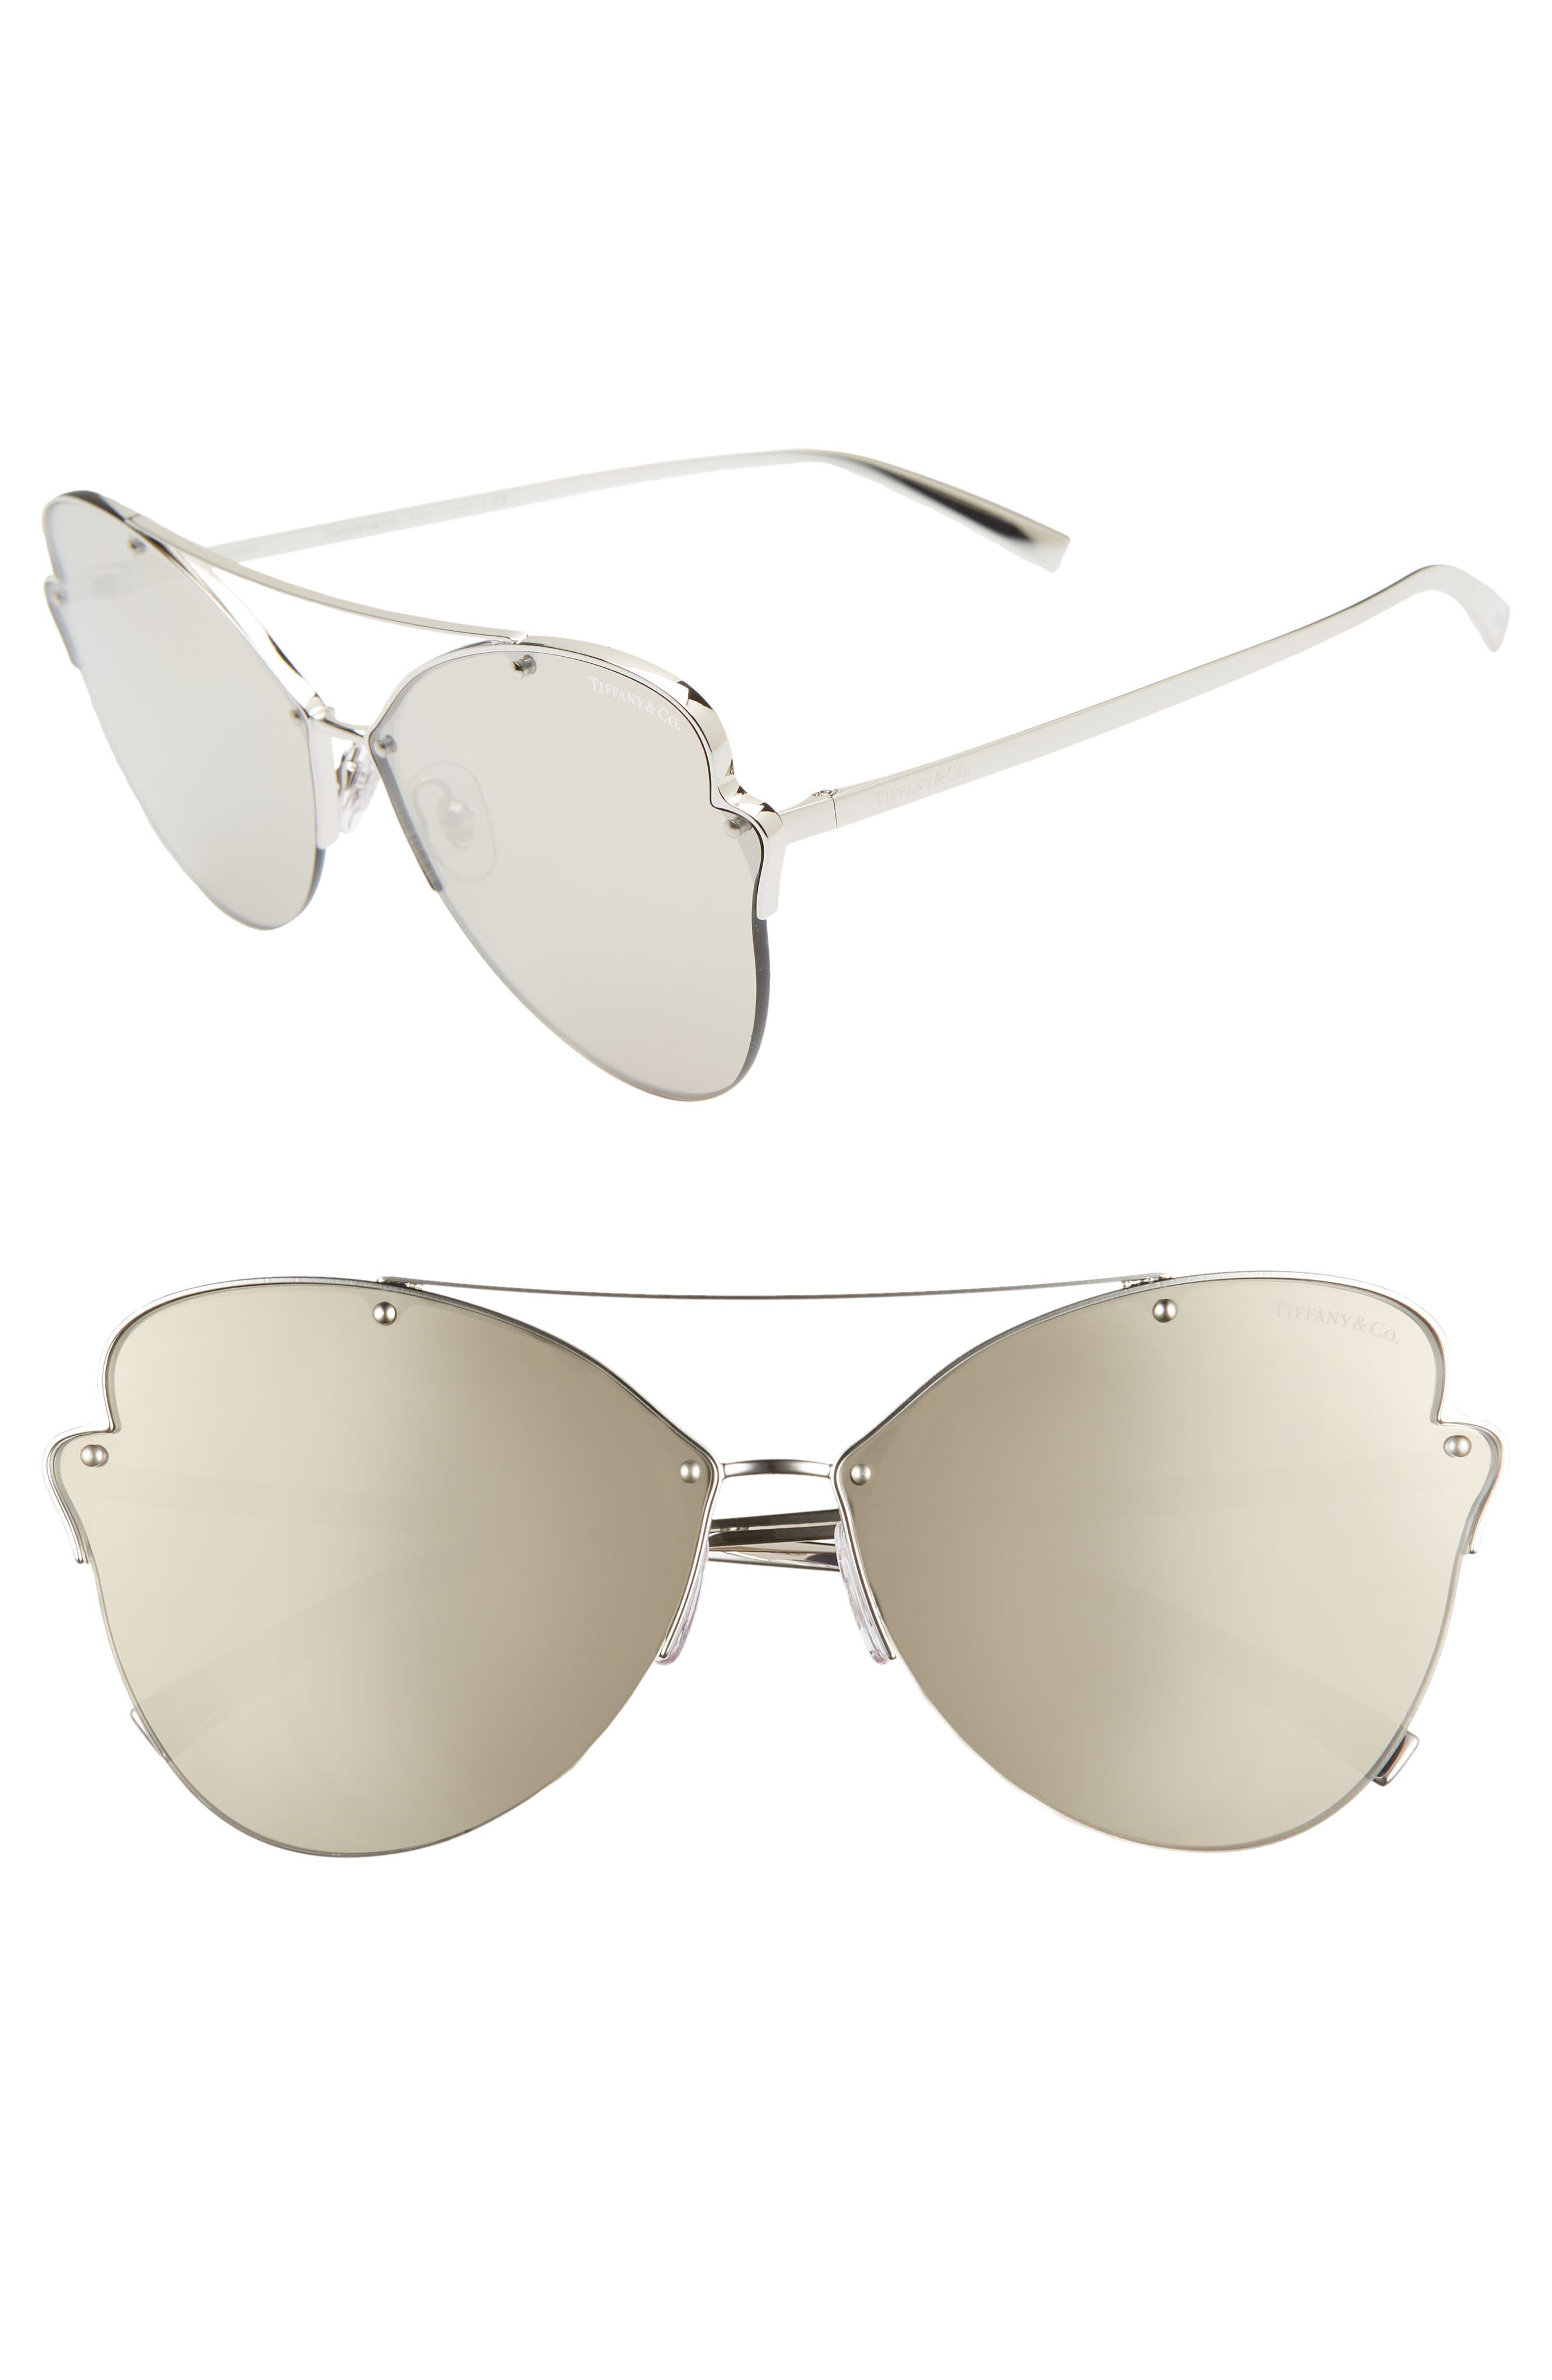 TIFFANY & CO Paper Flowers 64Mm Oversize Mirrored Sunglasses - Silver Mirror